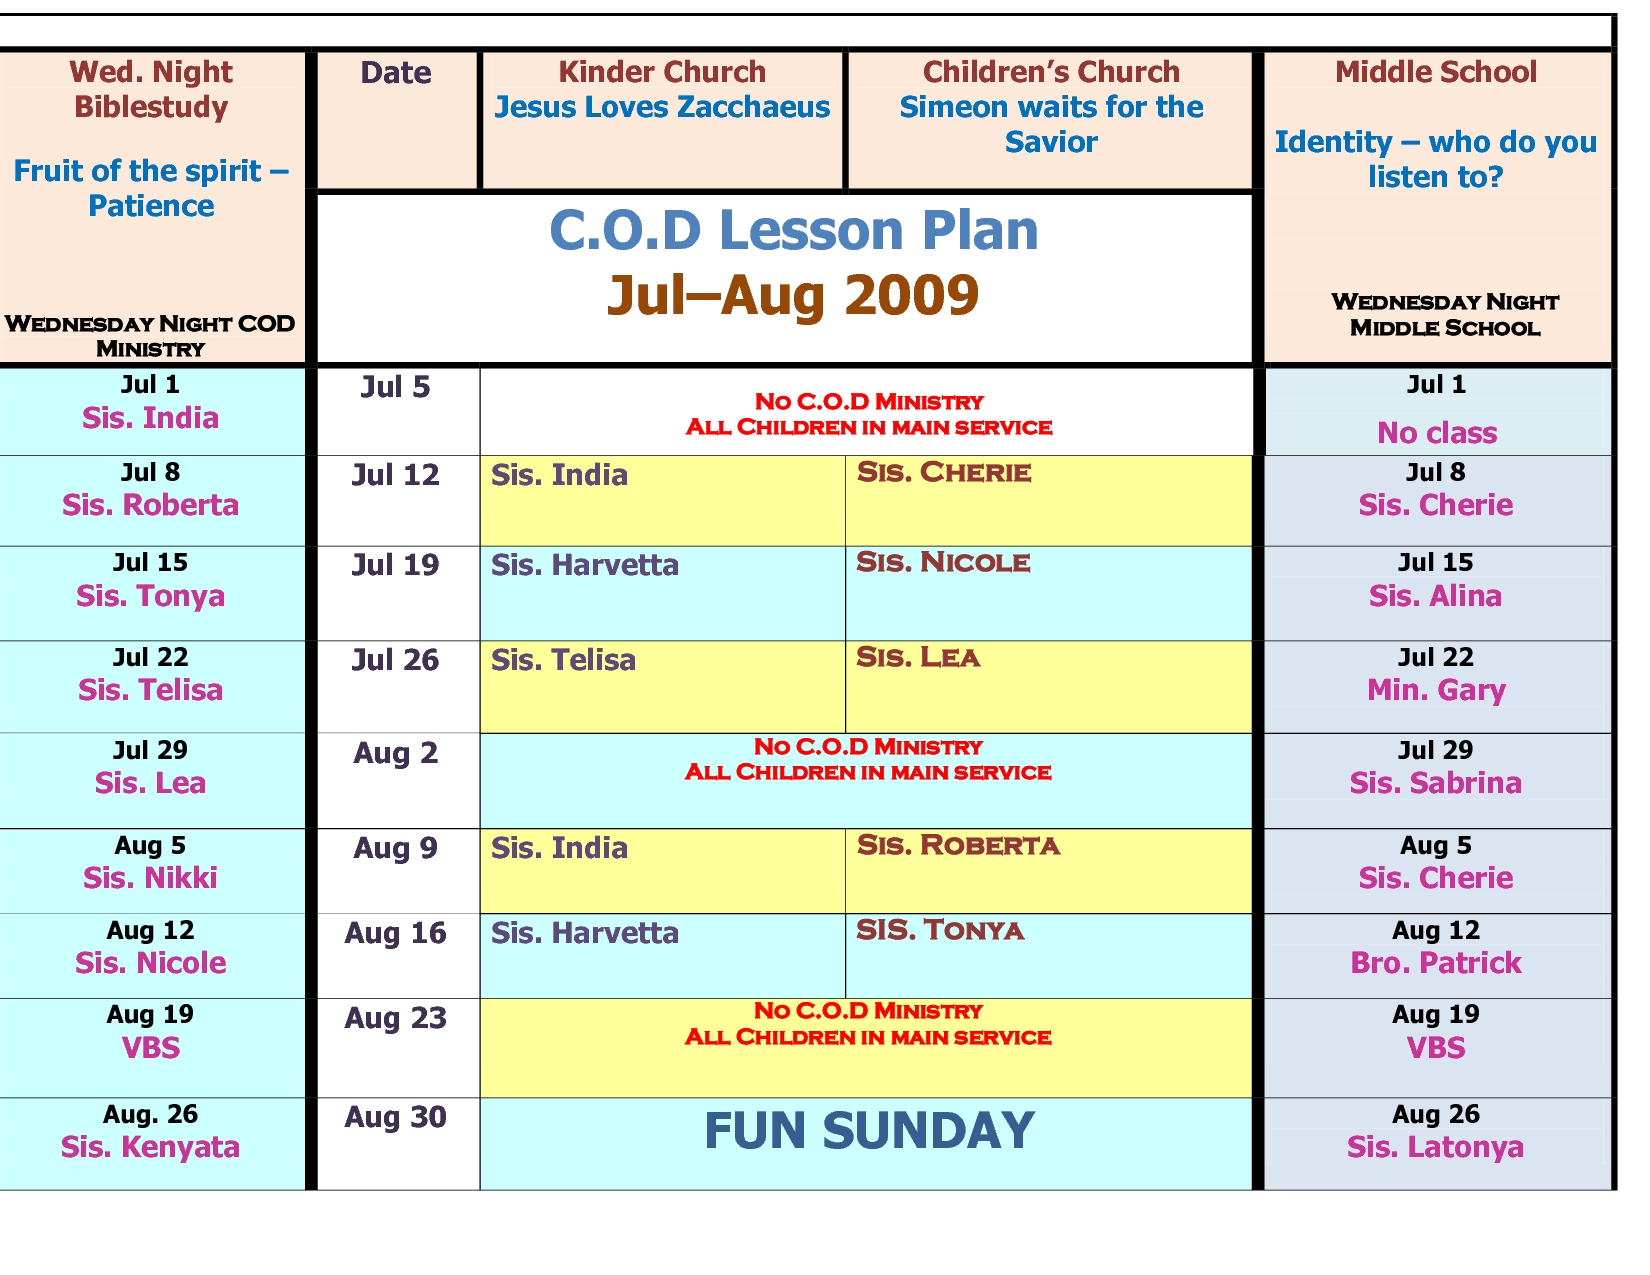 Children's Church Schedule Template - Google Search | Children's throughout Template Printable For Monthly Calendar Lesson Plans For Childrens Church